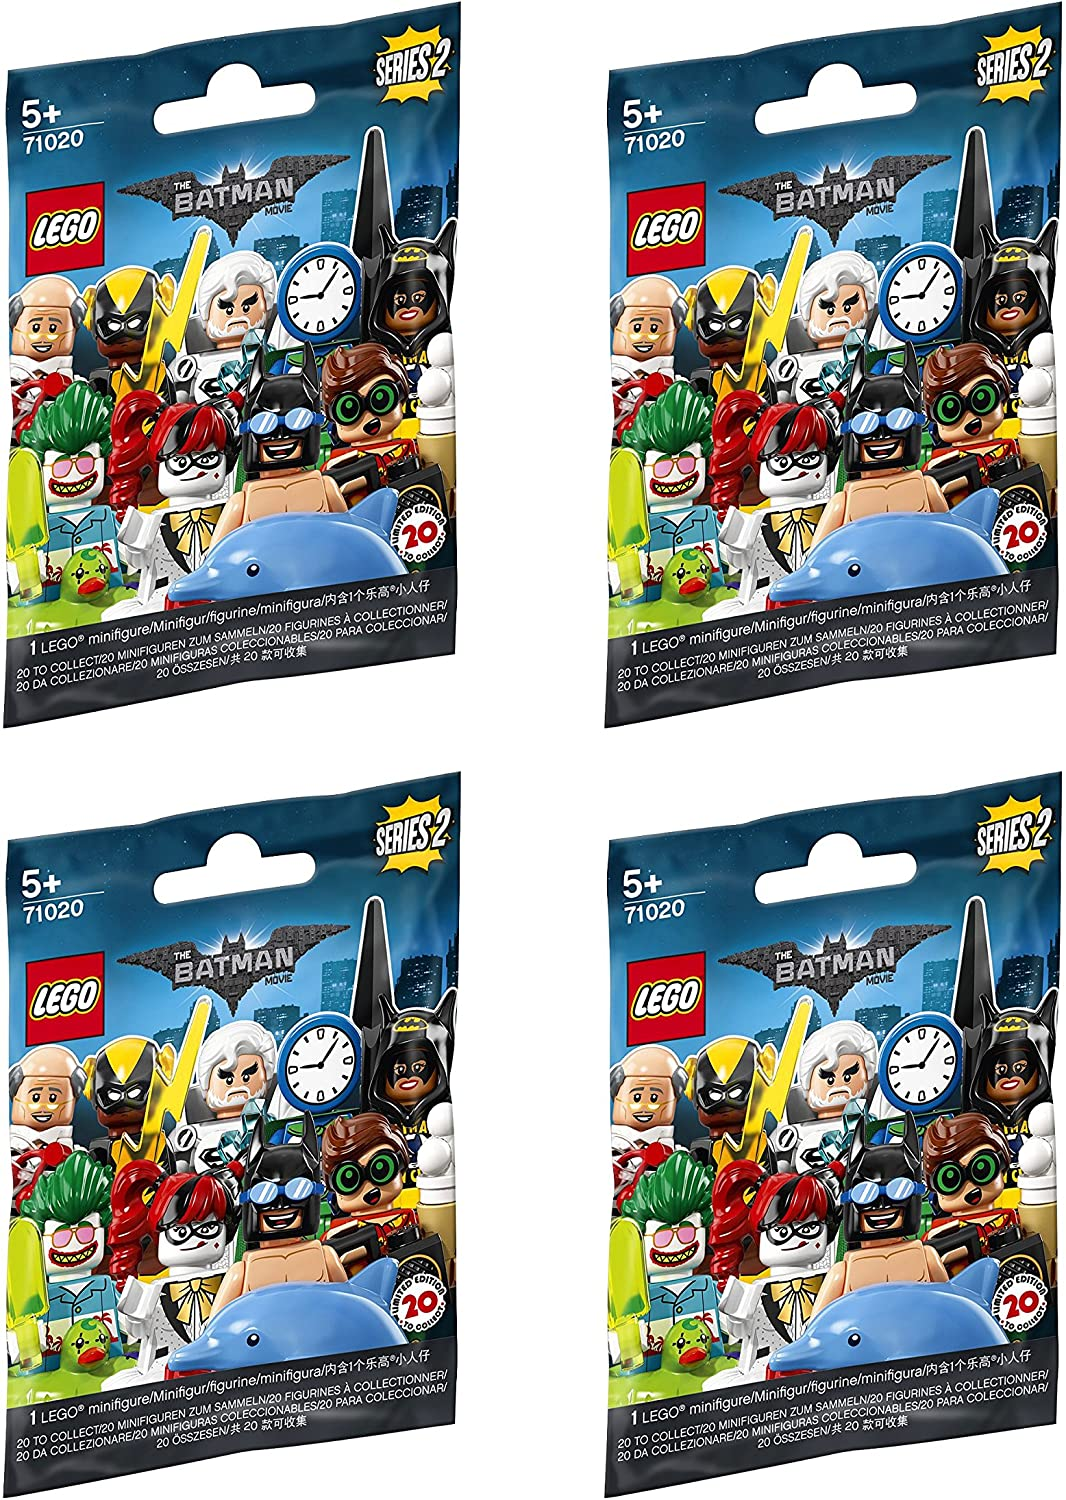 LEGO Minifigure Batman Series 2 - New Sealed Blind Bags - Random Set of 4 (71020)